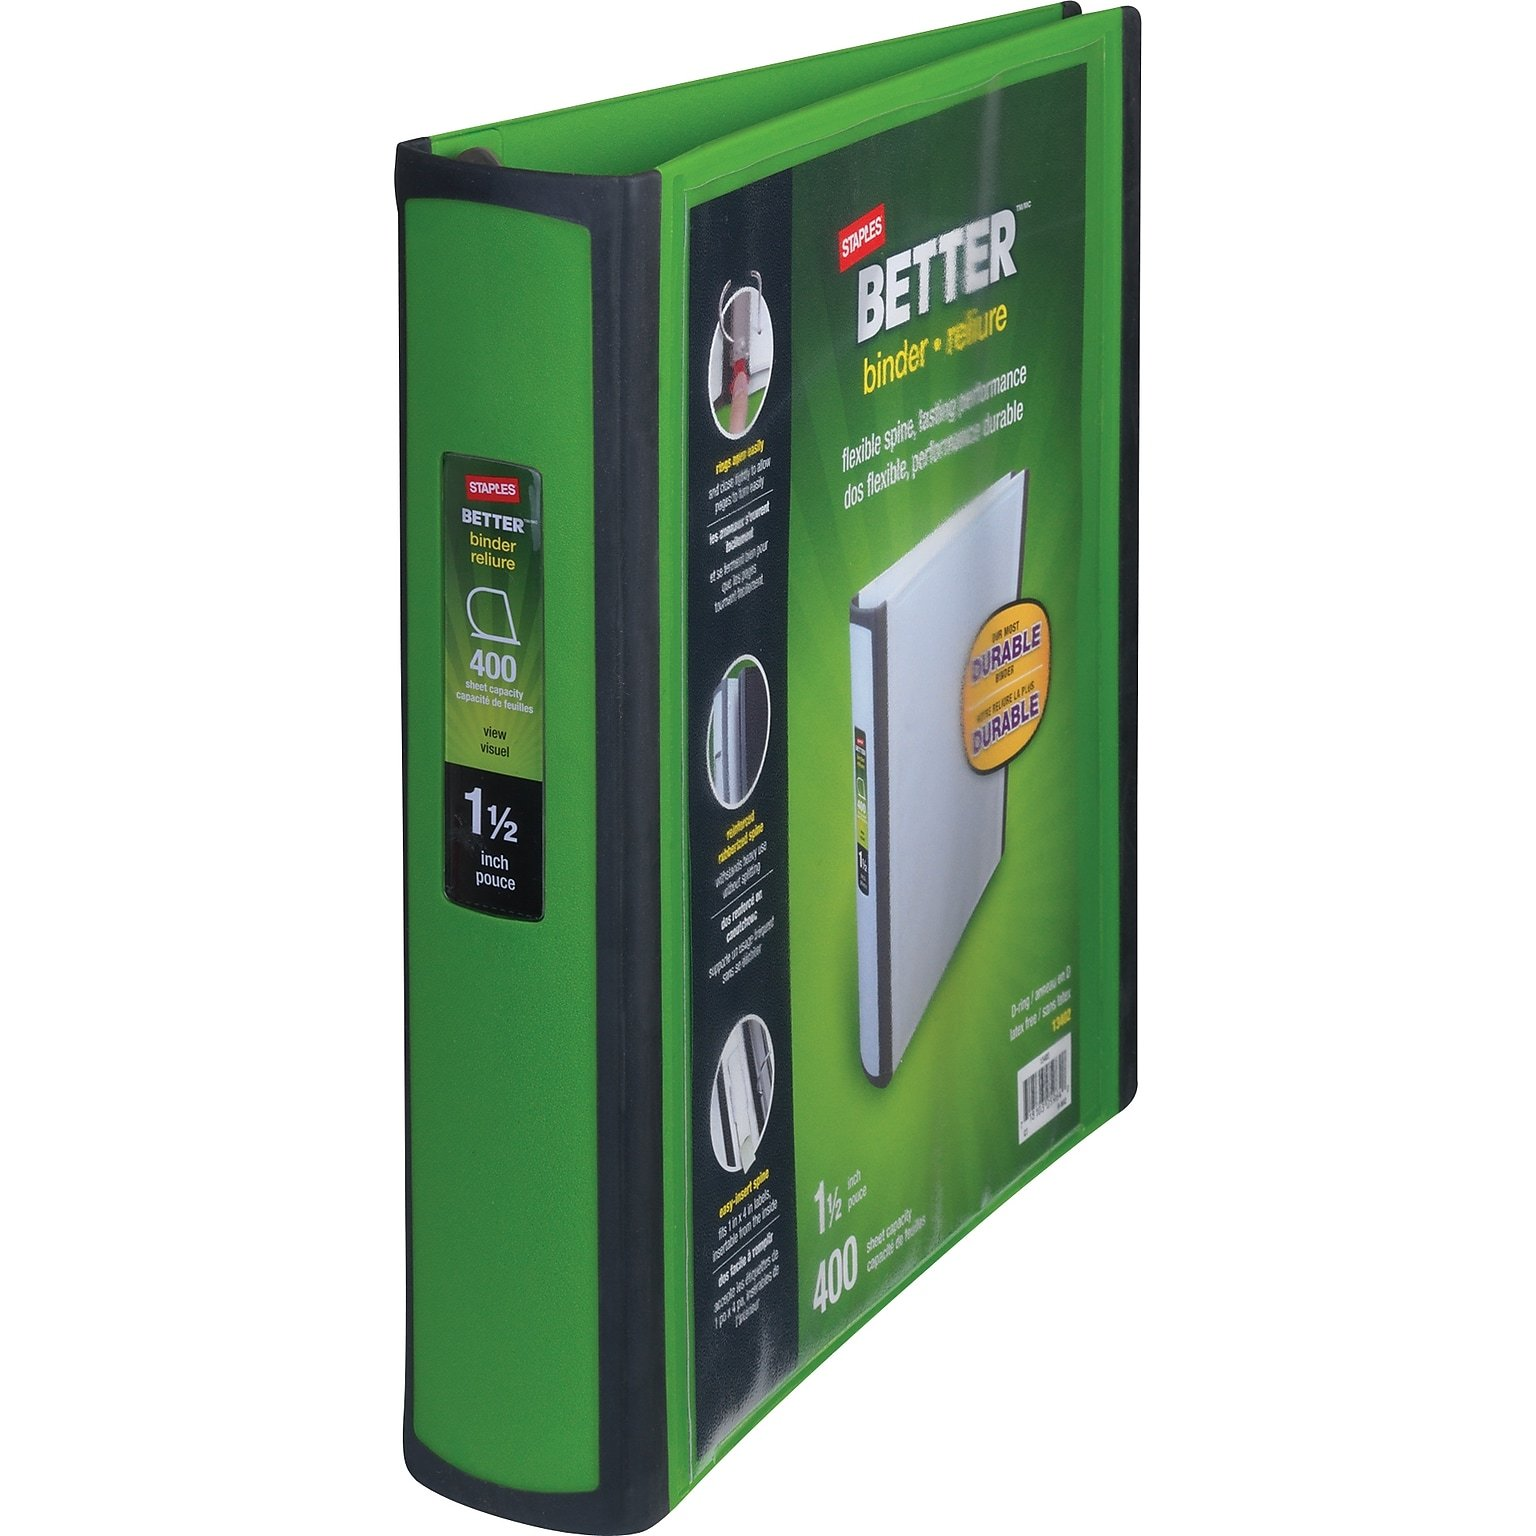 Staples 1-1/2 Inch Better View Binders with D-Rings, Green